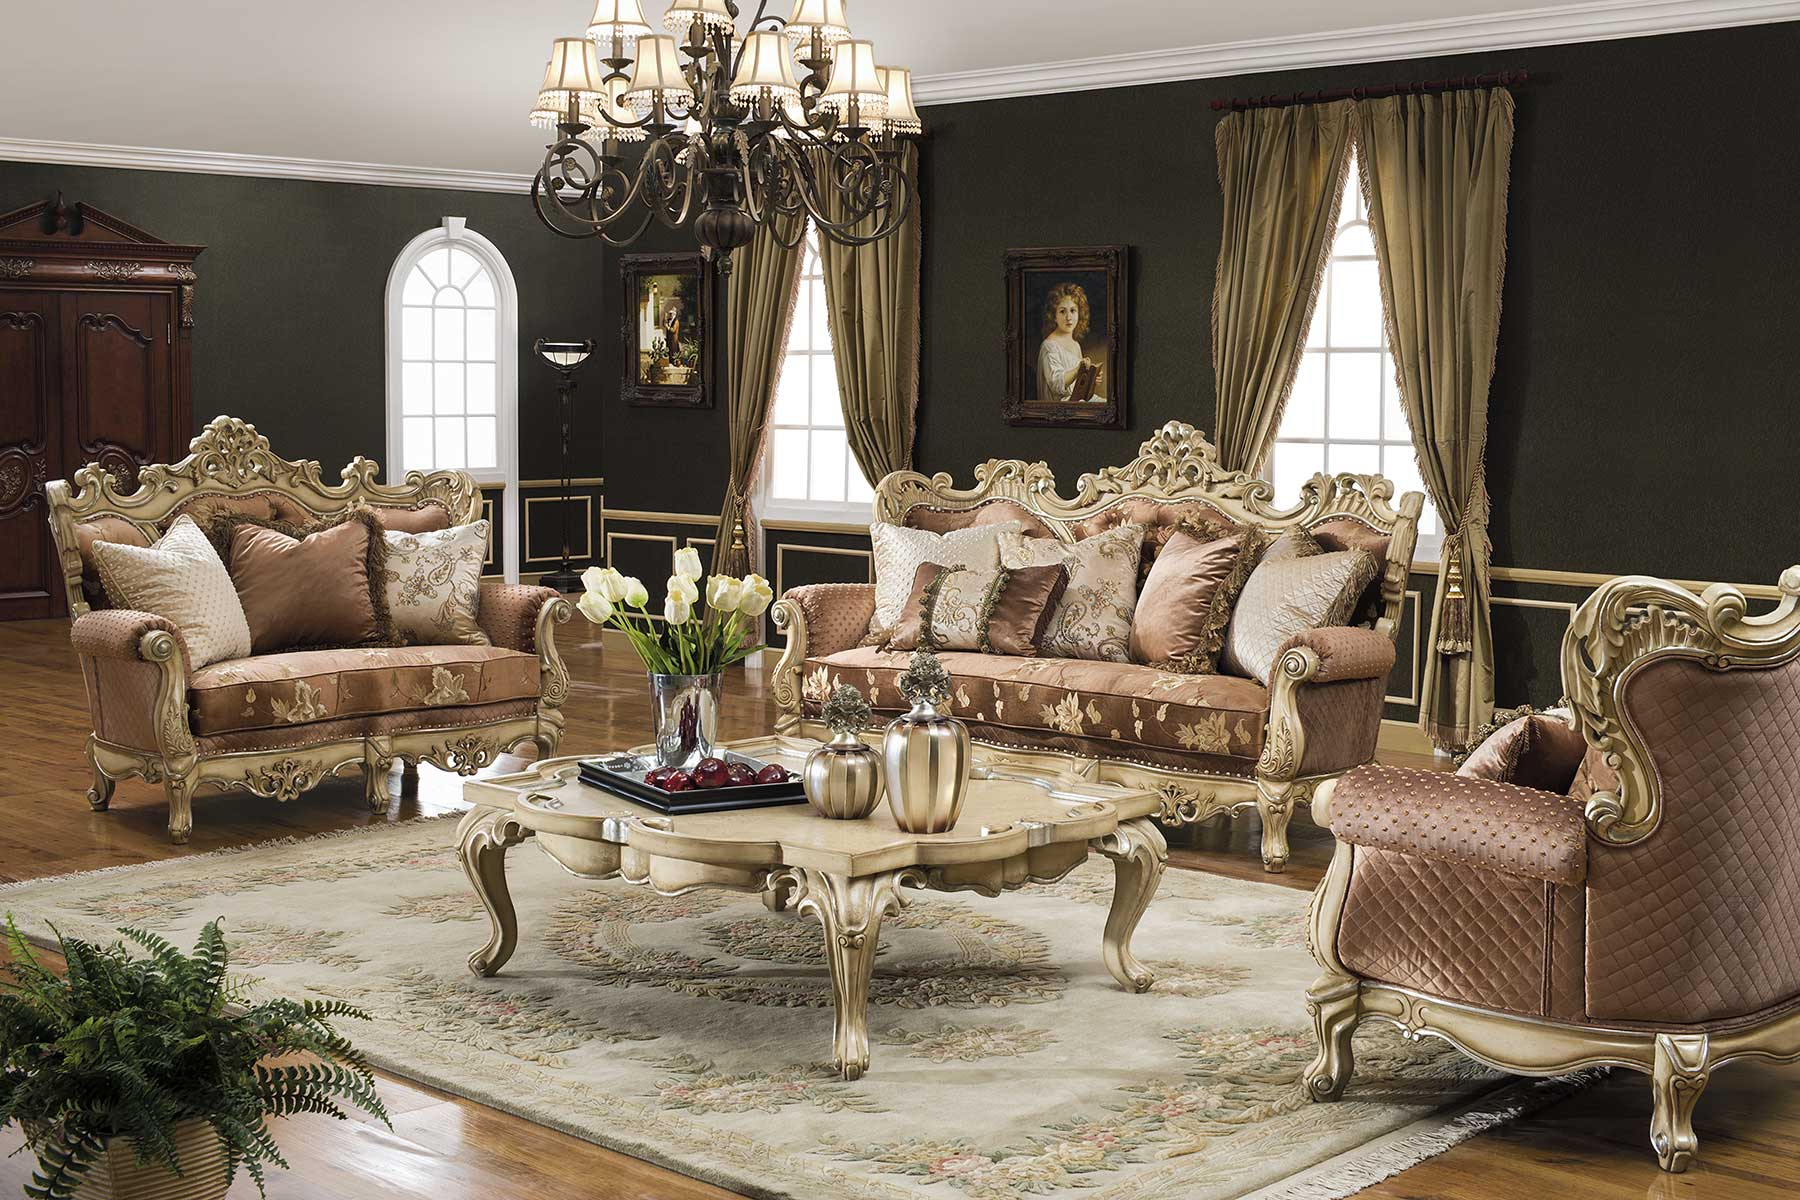 Valencia Carved Wood Traditional Bedroom Furniture Set 209000: Caesar Living Room Collection